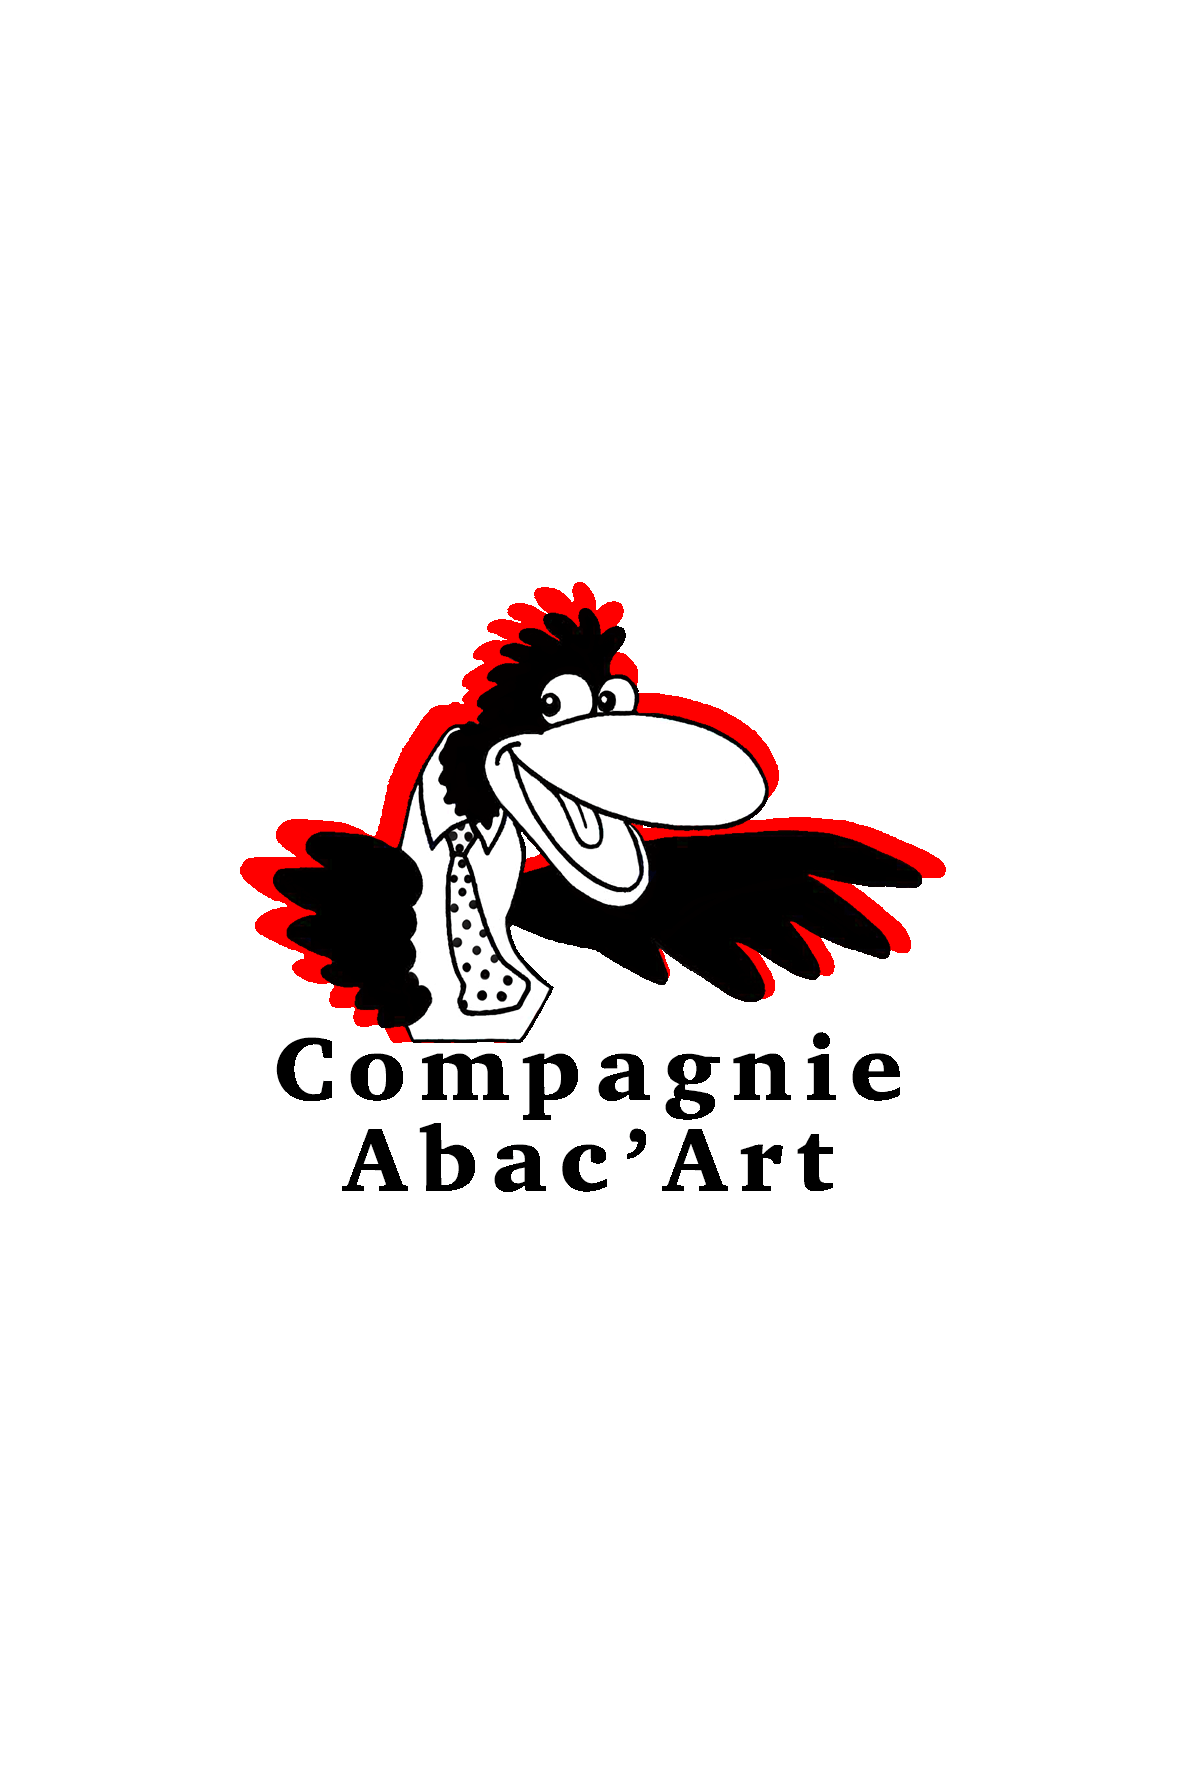 Compagnie Abac'Art